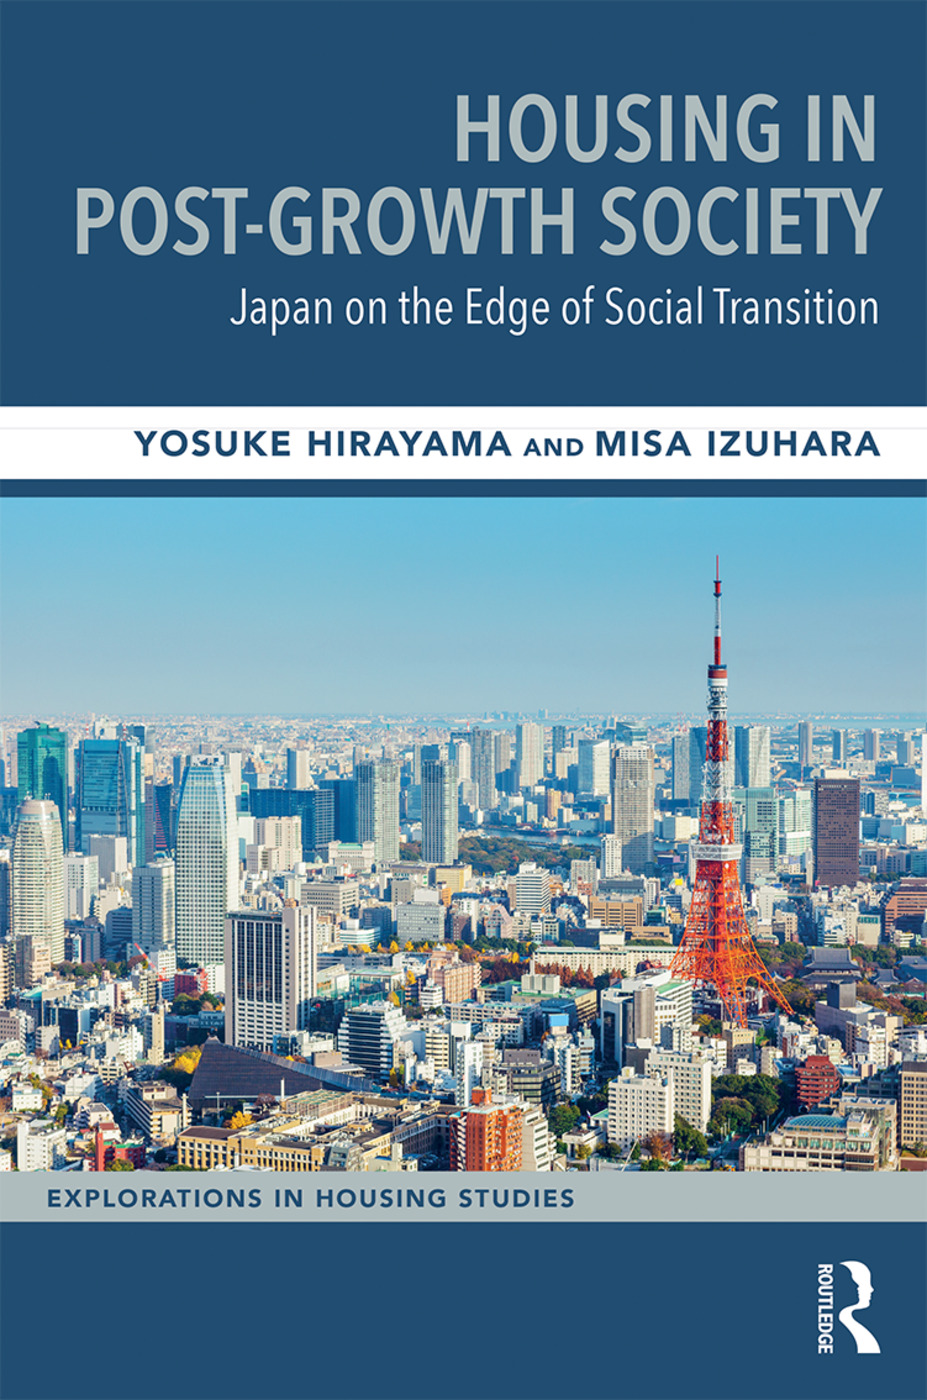 Housing in Post-Growth Society: Japan on the Edge of Social Transition book cover